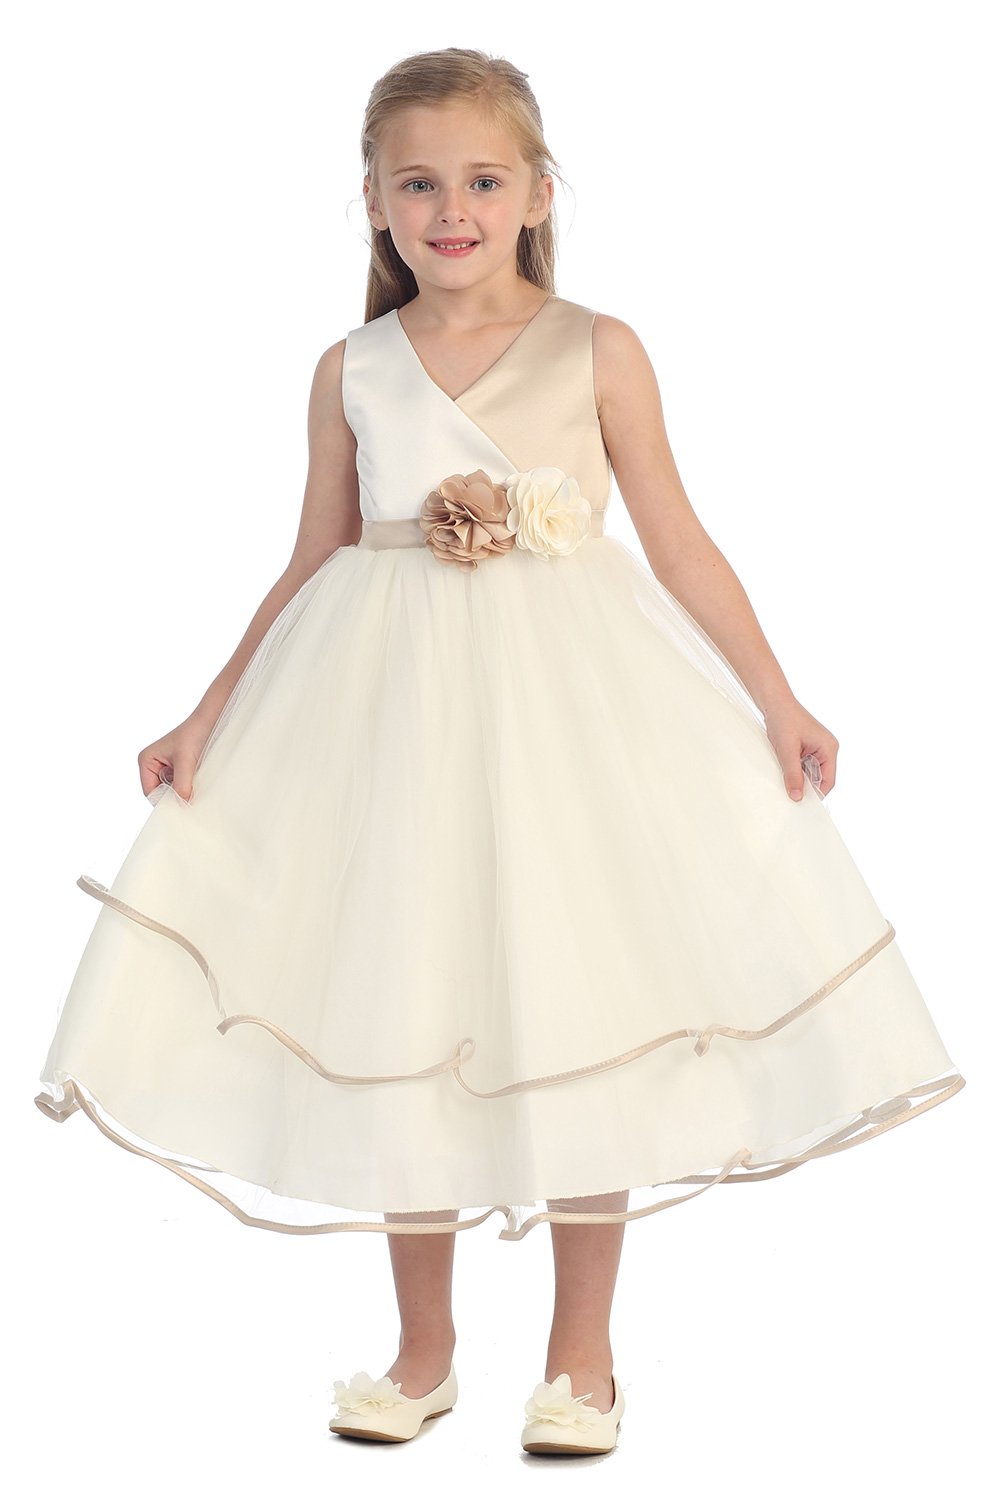 A-Line First Communion Dresses for Girls Mid-Calf Flower Girls Dresses For Wedding Gowns Sleeveless Mother Daughter Dresses купить